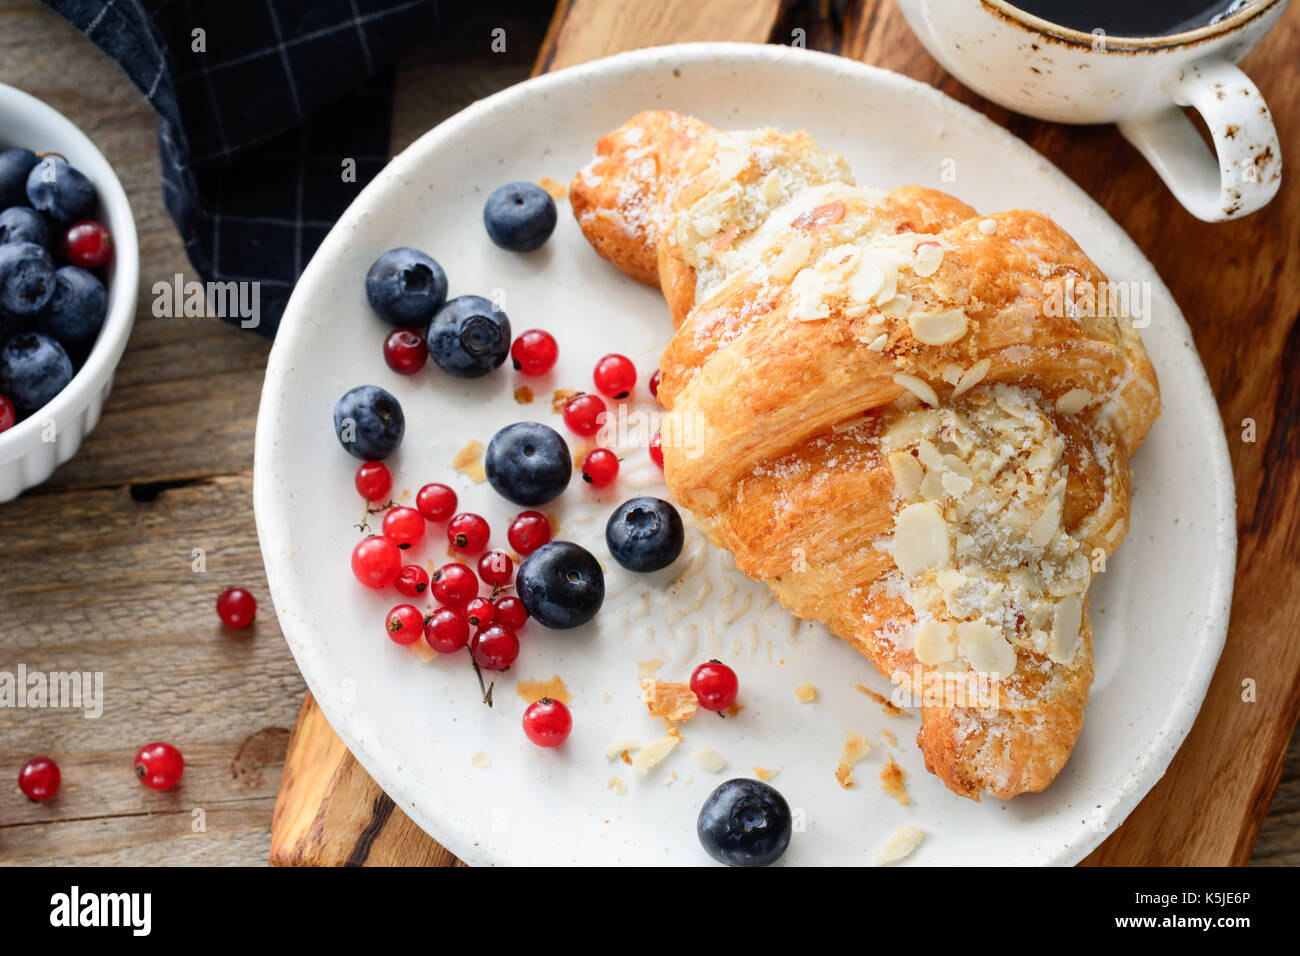 Fresh croissant, blueberries and red currants on white plate. Continental breakfast. Horizontal composition - Stock Image